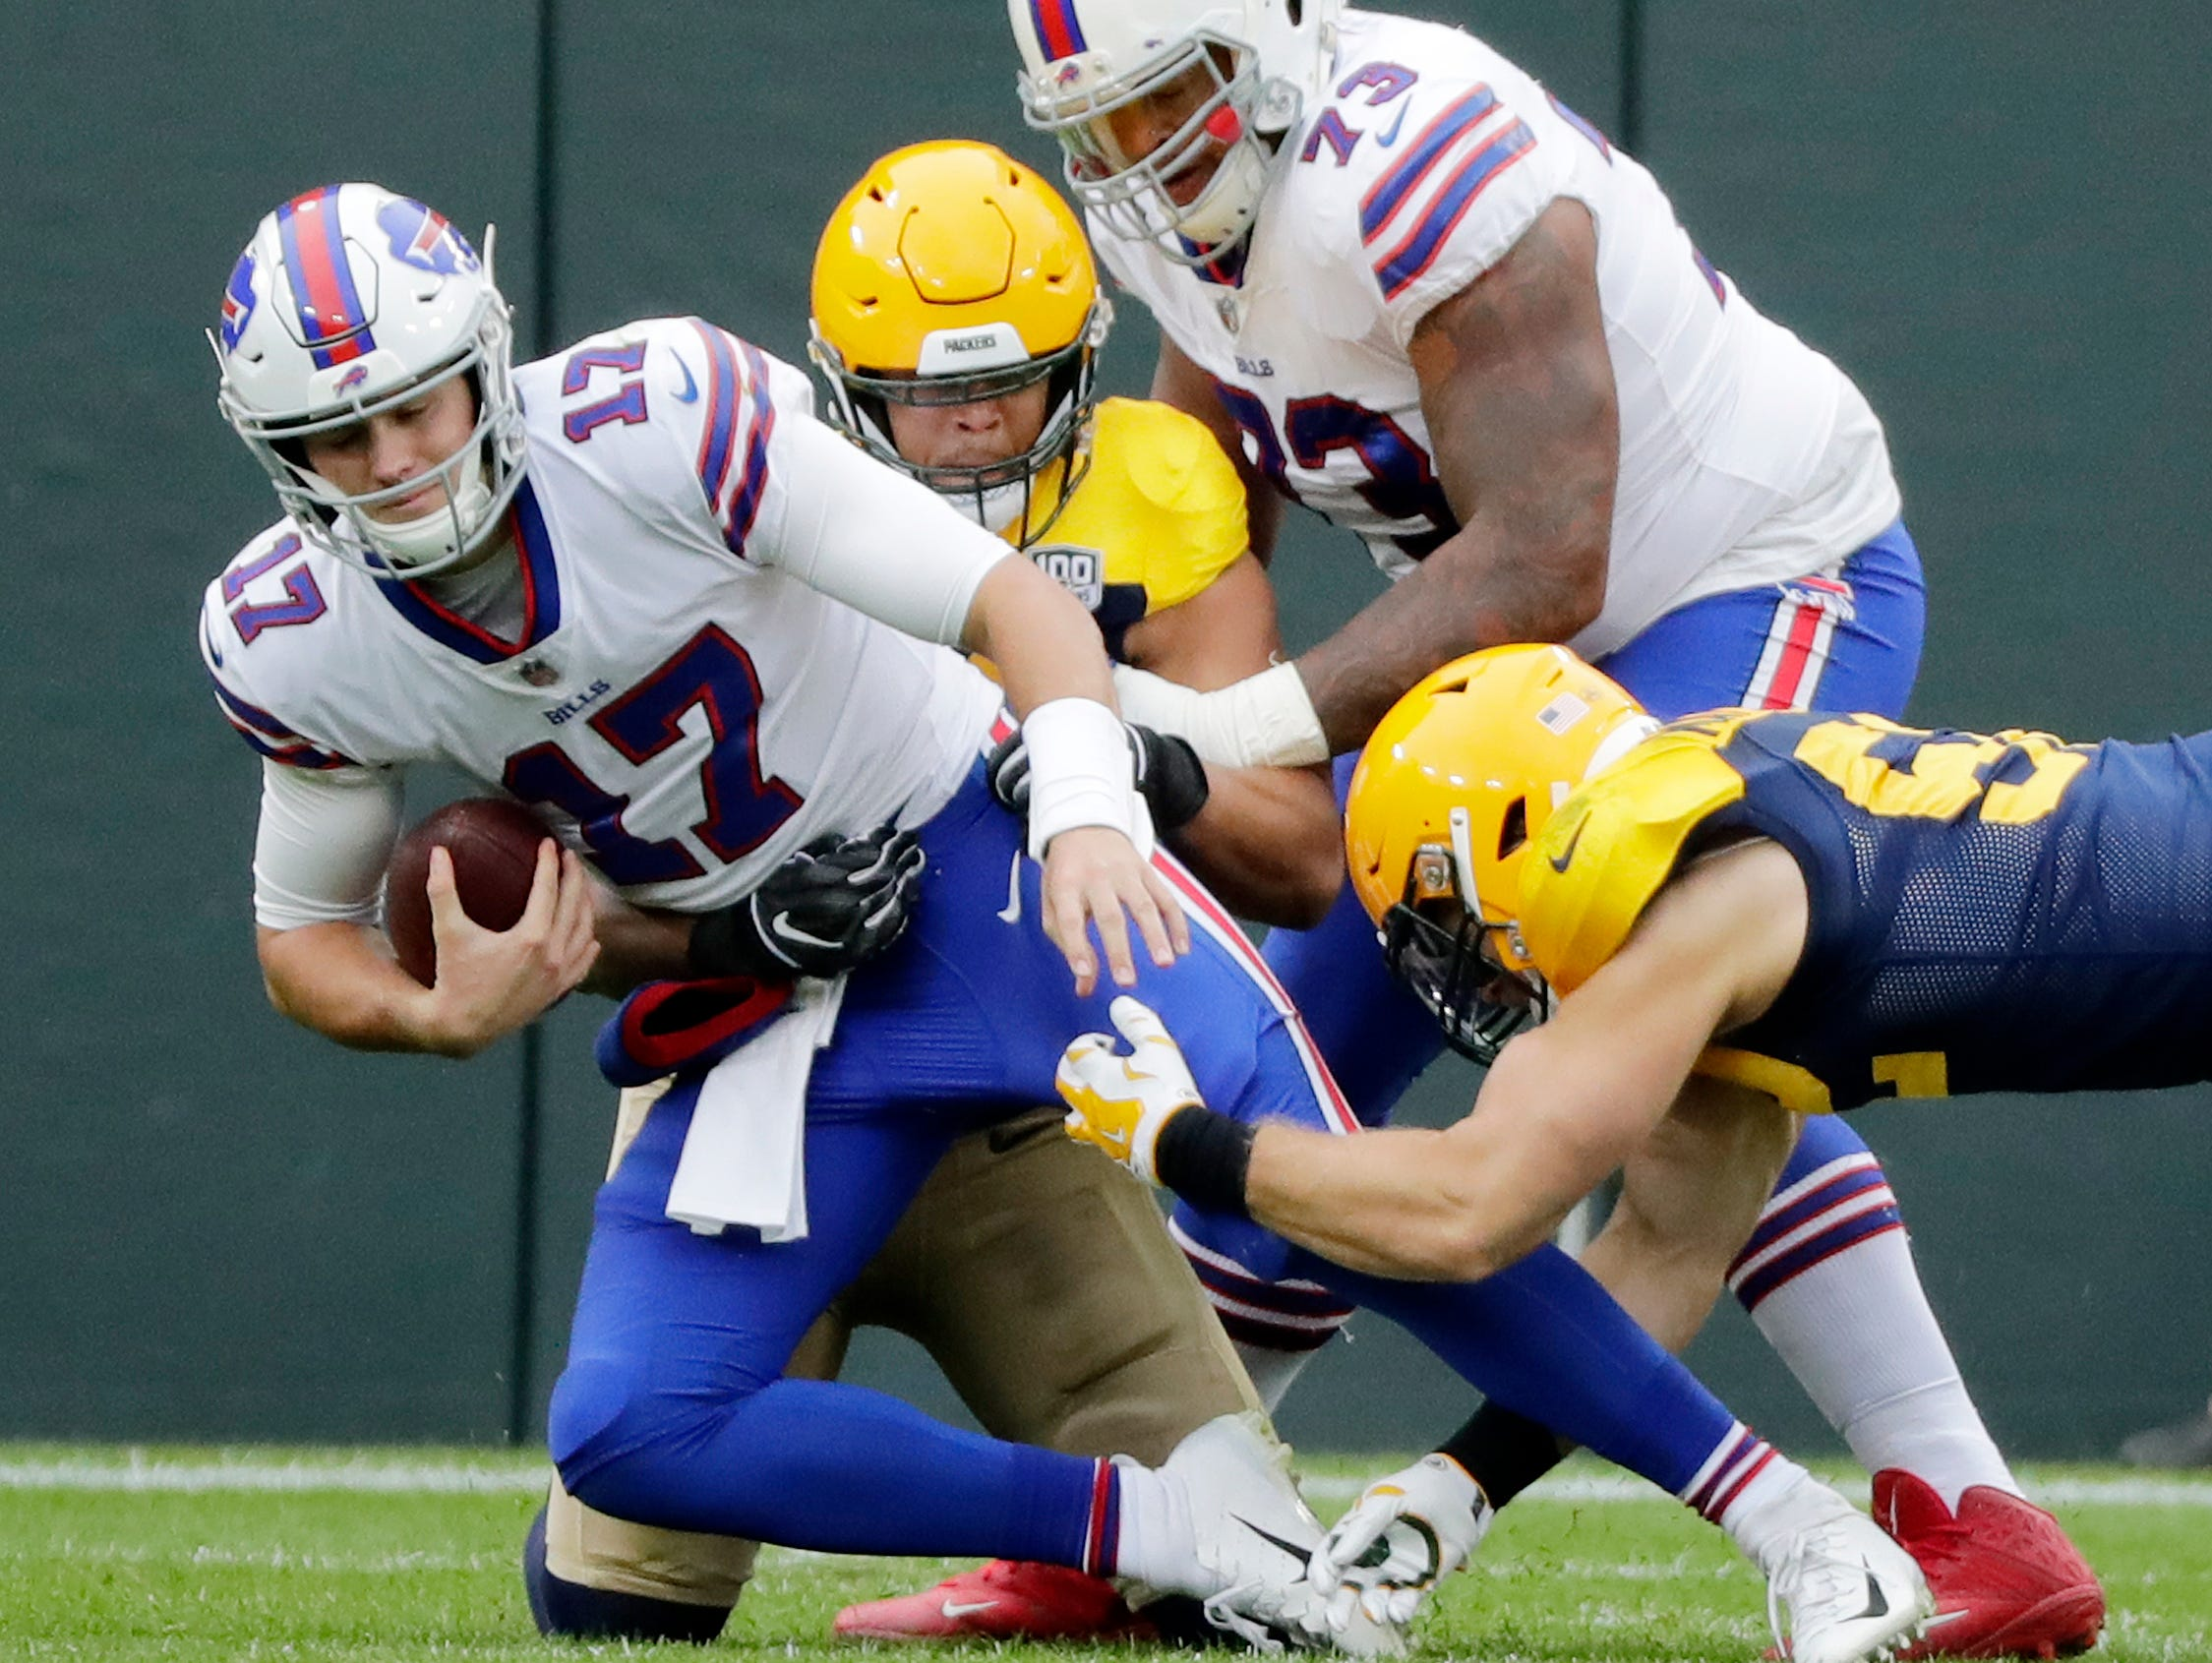 Green Bay Packers linebacker Clay Matthews (52) and linebacker Nick Perry (53) sack Buffalo Bills quarterback Josh Allen (17) in the first quarter at Lambeau Field on Sunday, September 30, 2018 in Green Bay, Wis.